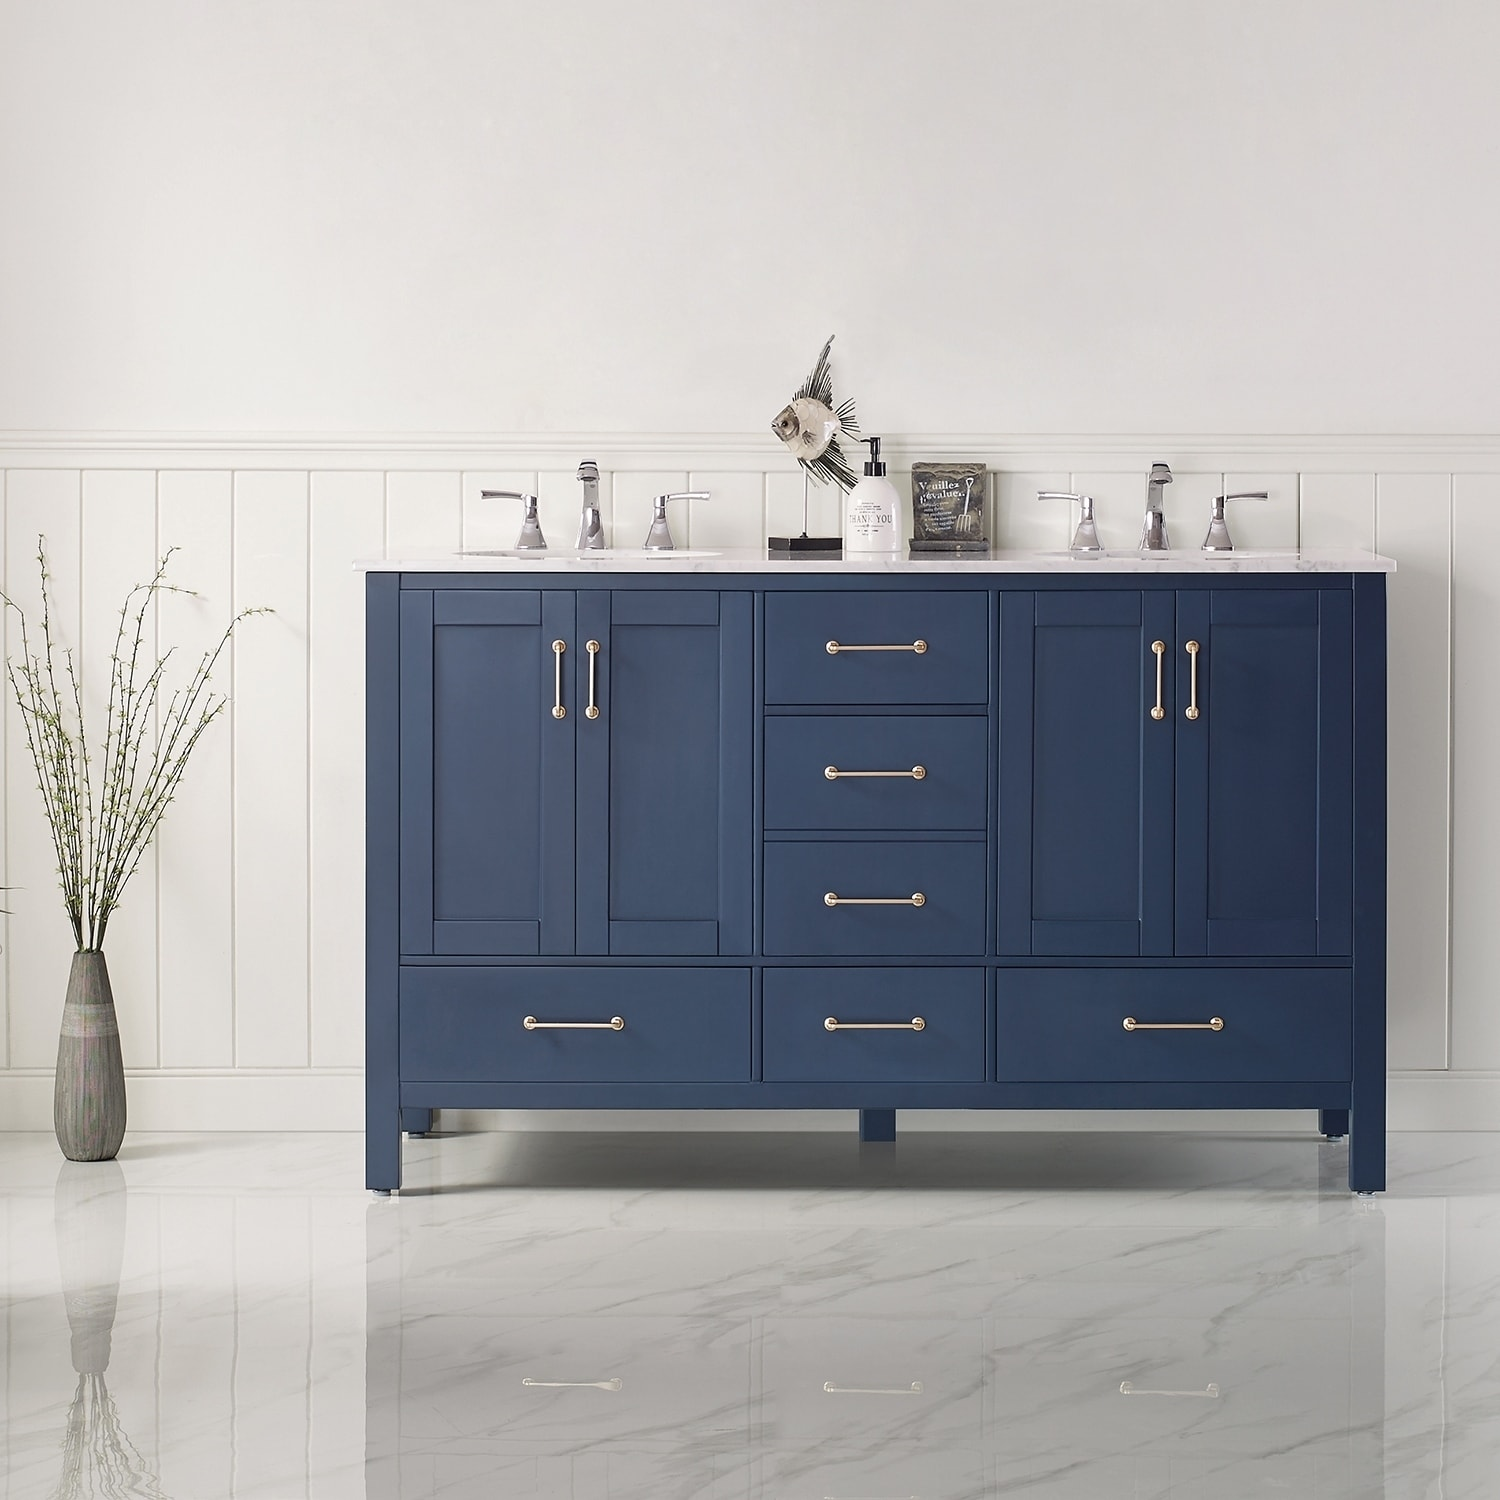 Gela 60 Double Vanity In Royal Blue With Carrara White Marble Countertop Without Mirror Overstock 30617606